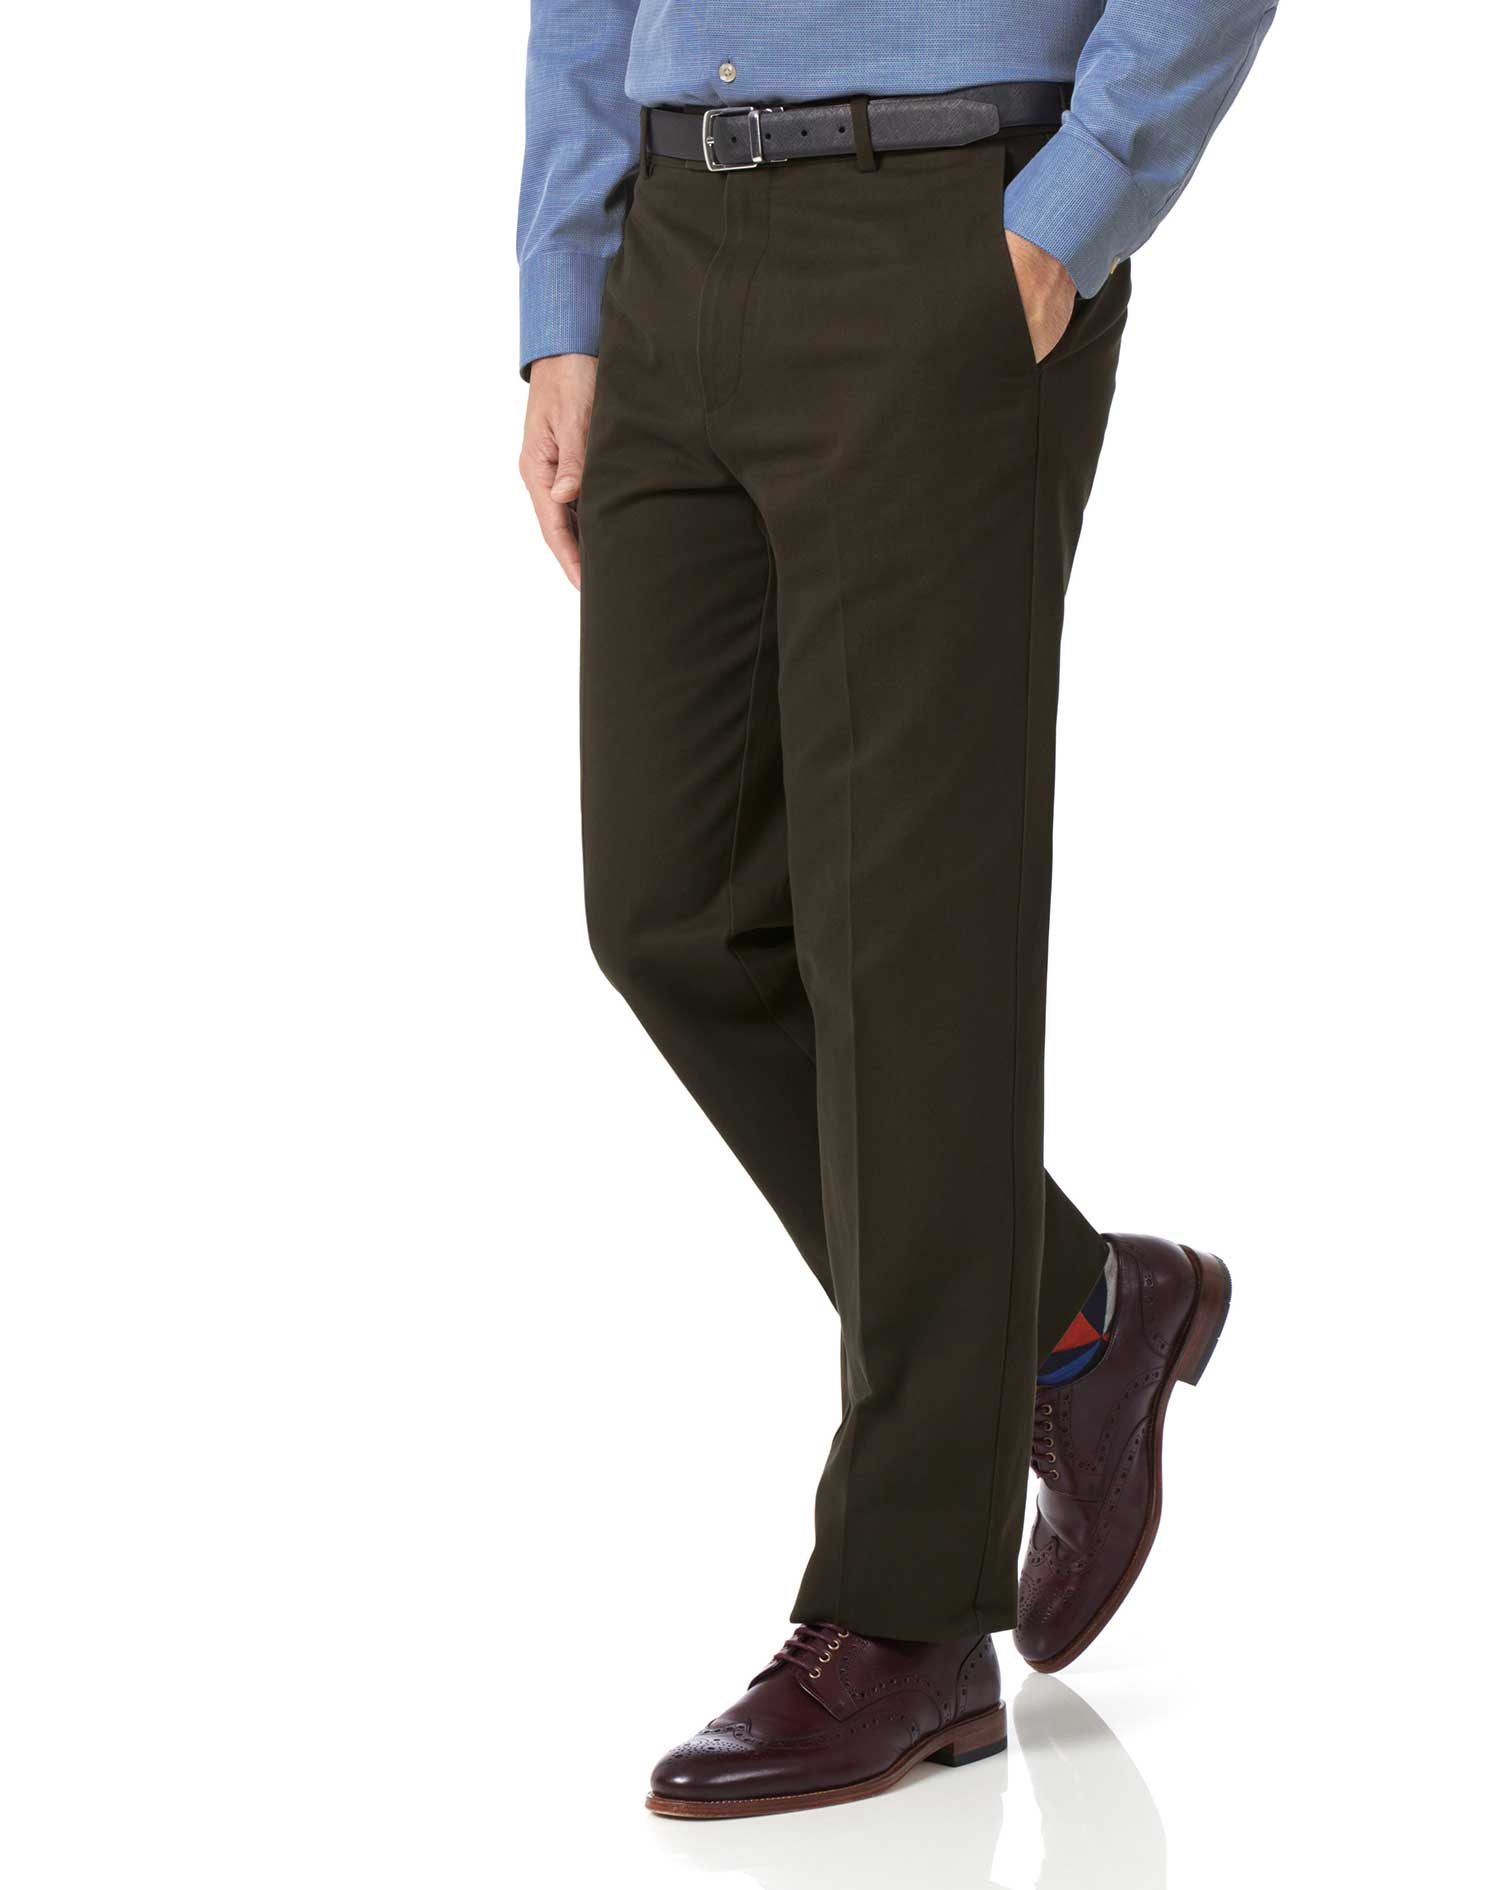 Brown Classic Fit Flat Front Non-Iron Cotton Chino Trousers Size W32 L32 by Charles Tyrwhitt